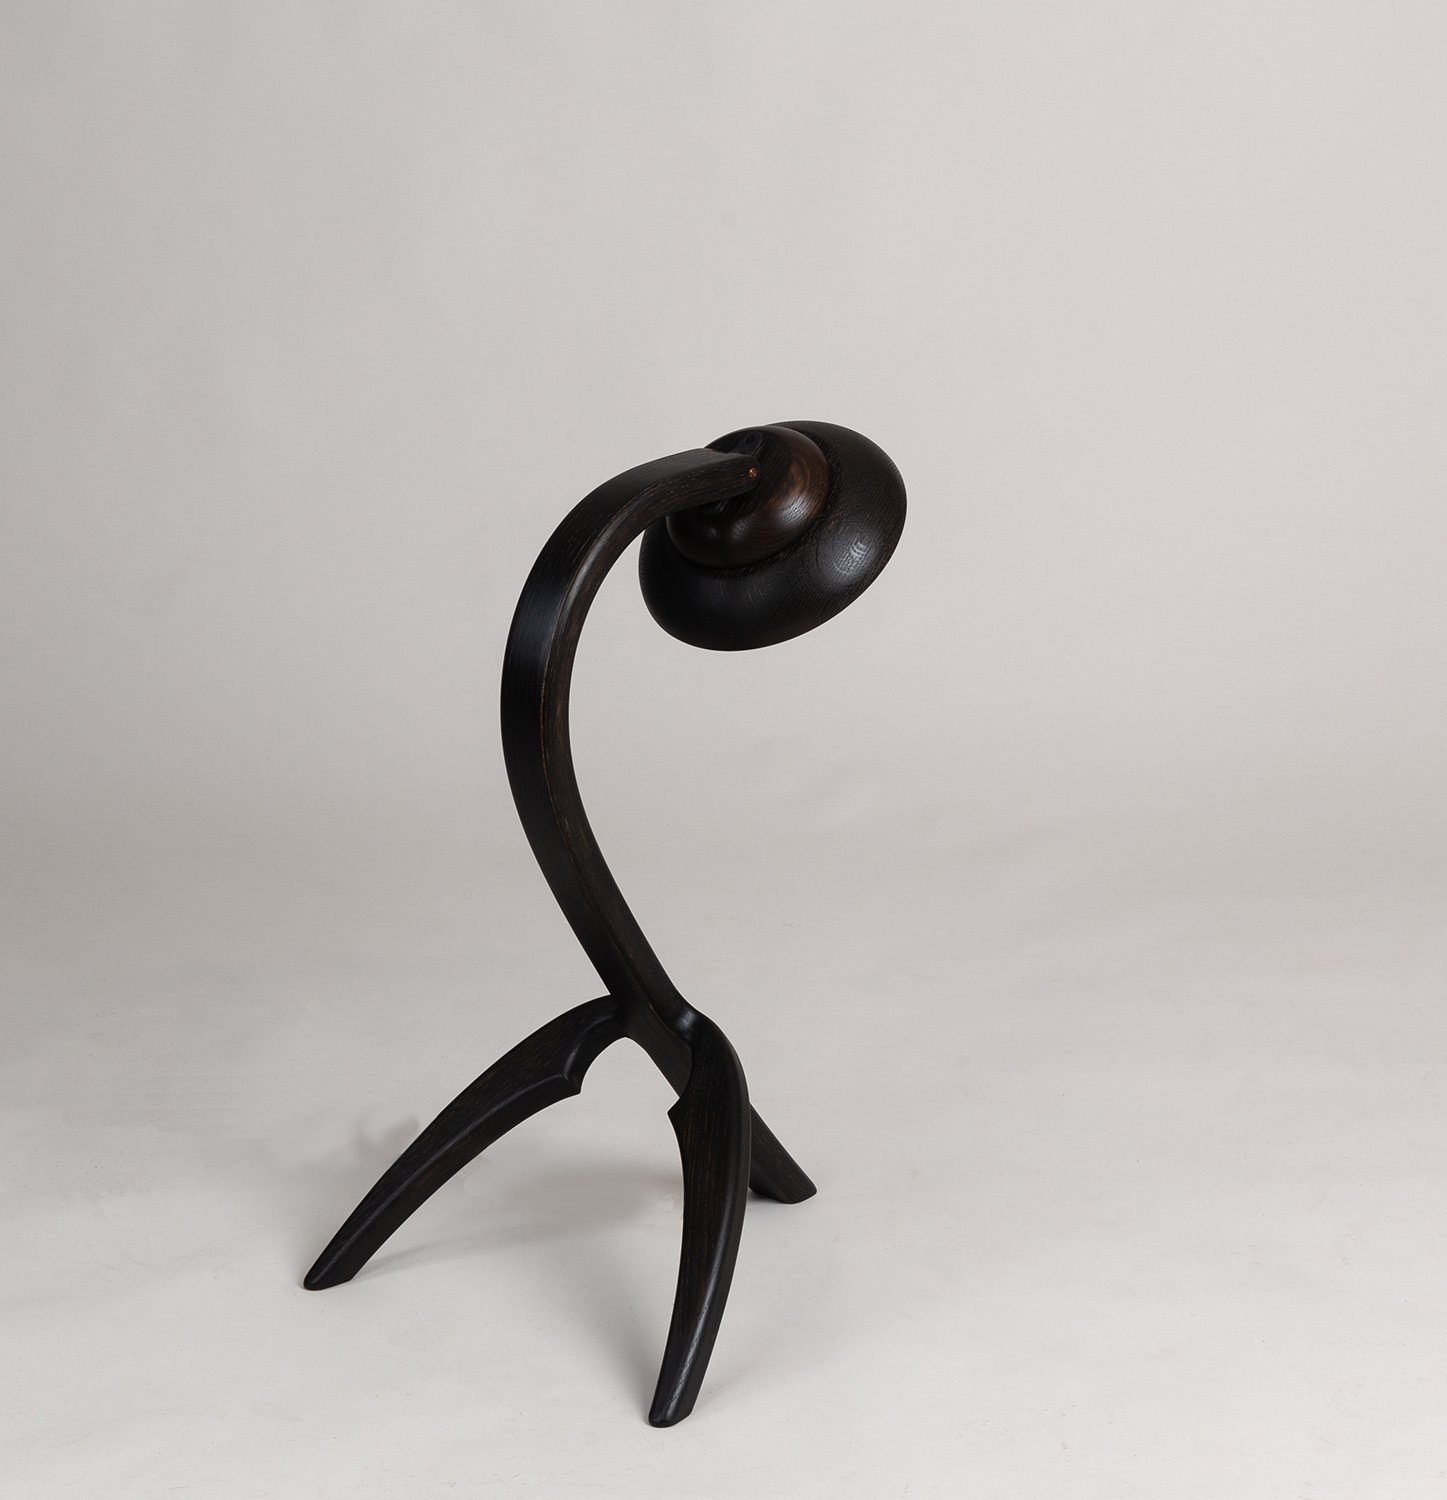 Eala Lamp by Alan Flannery Furniture Design L9.jpg